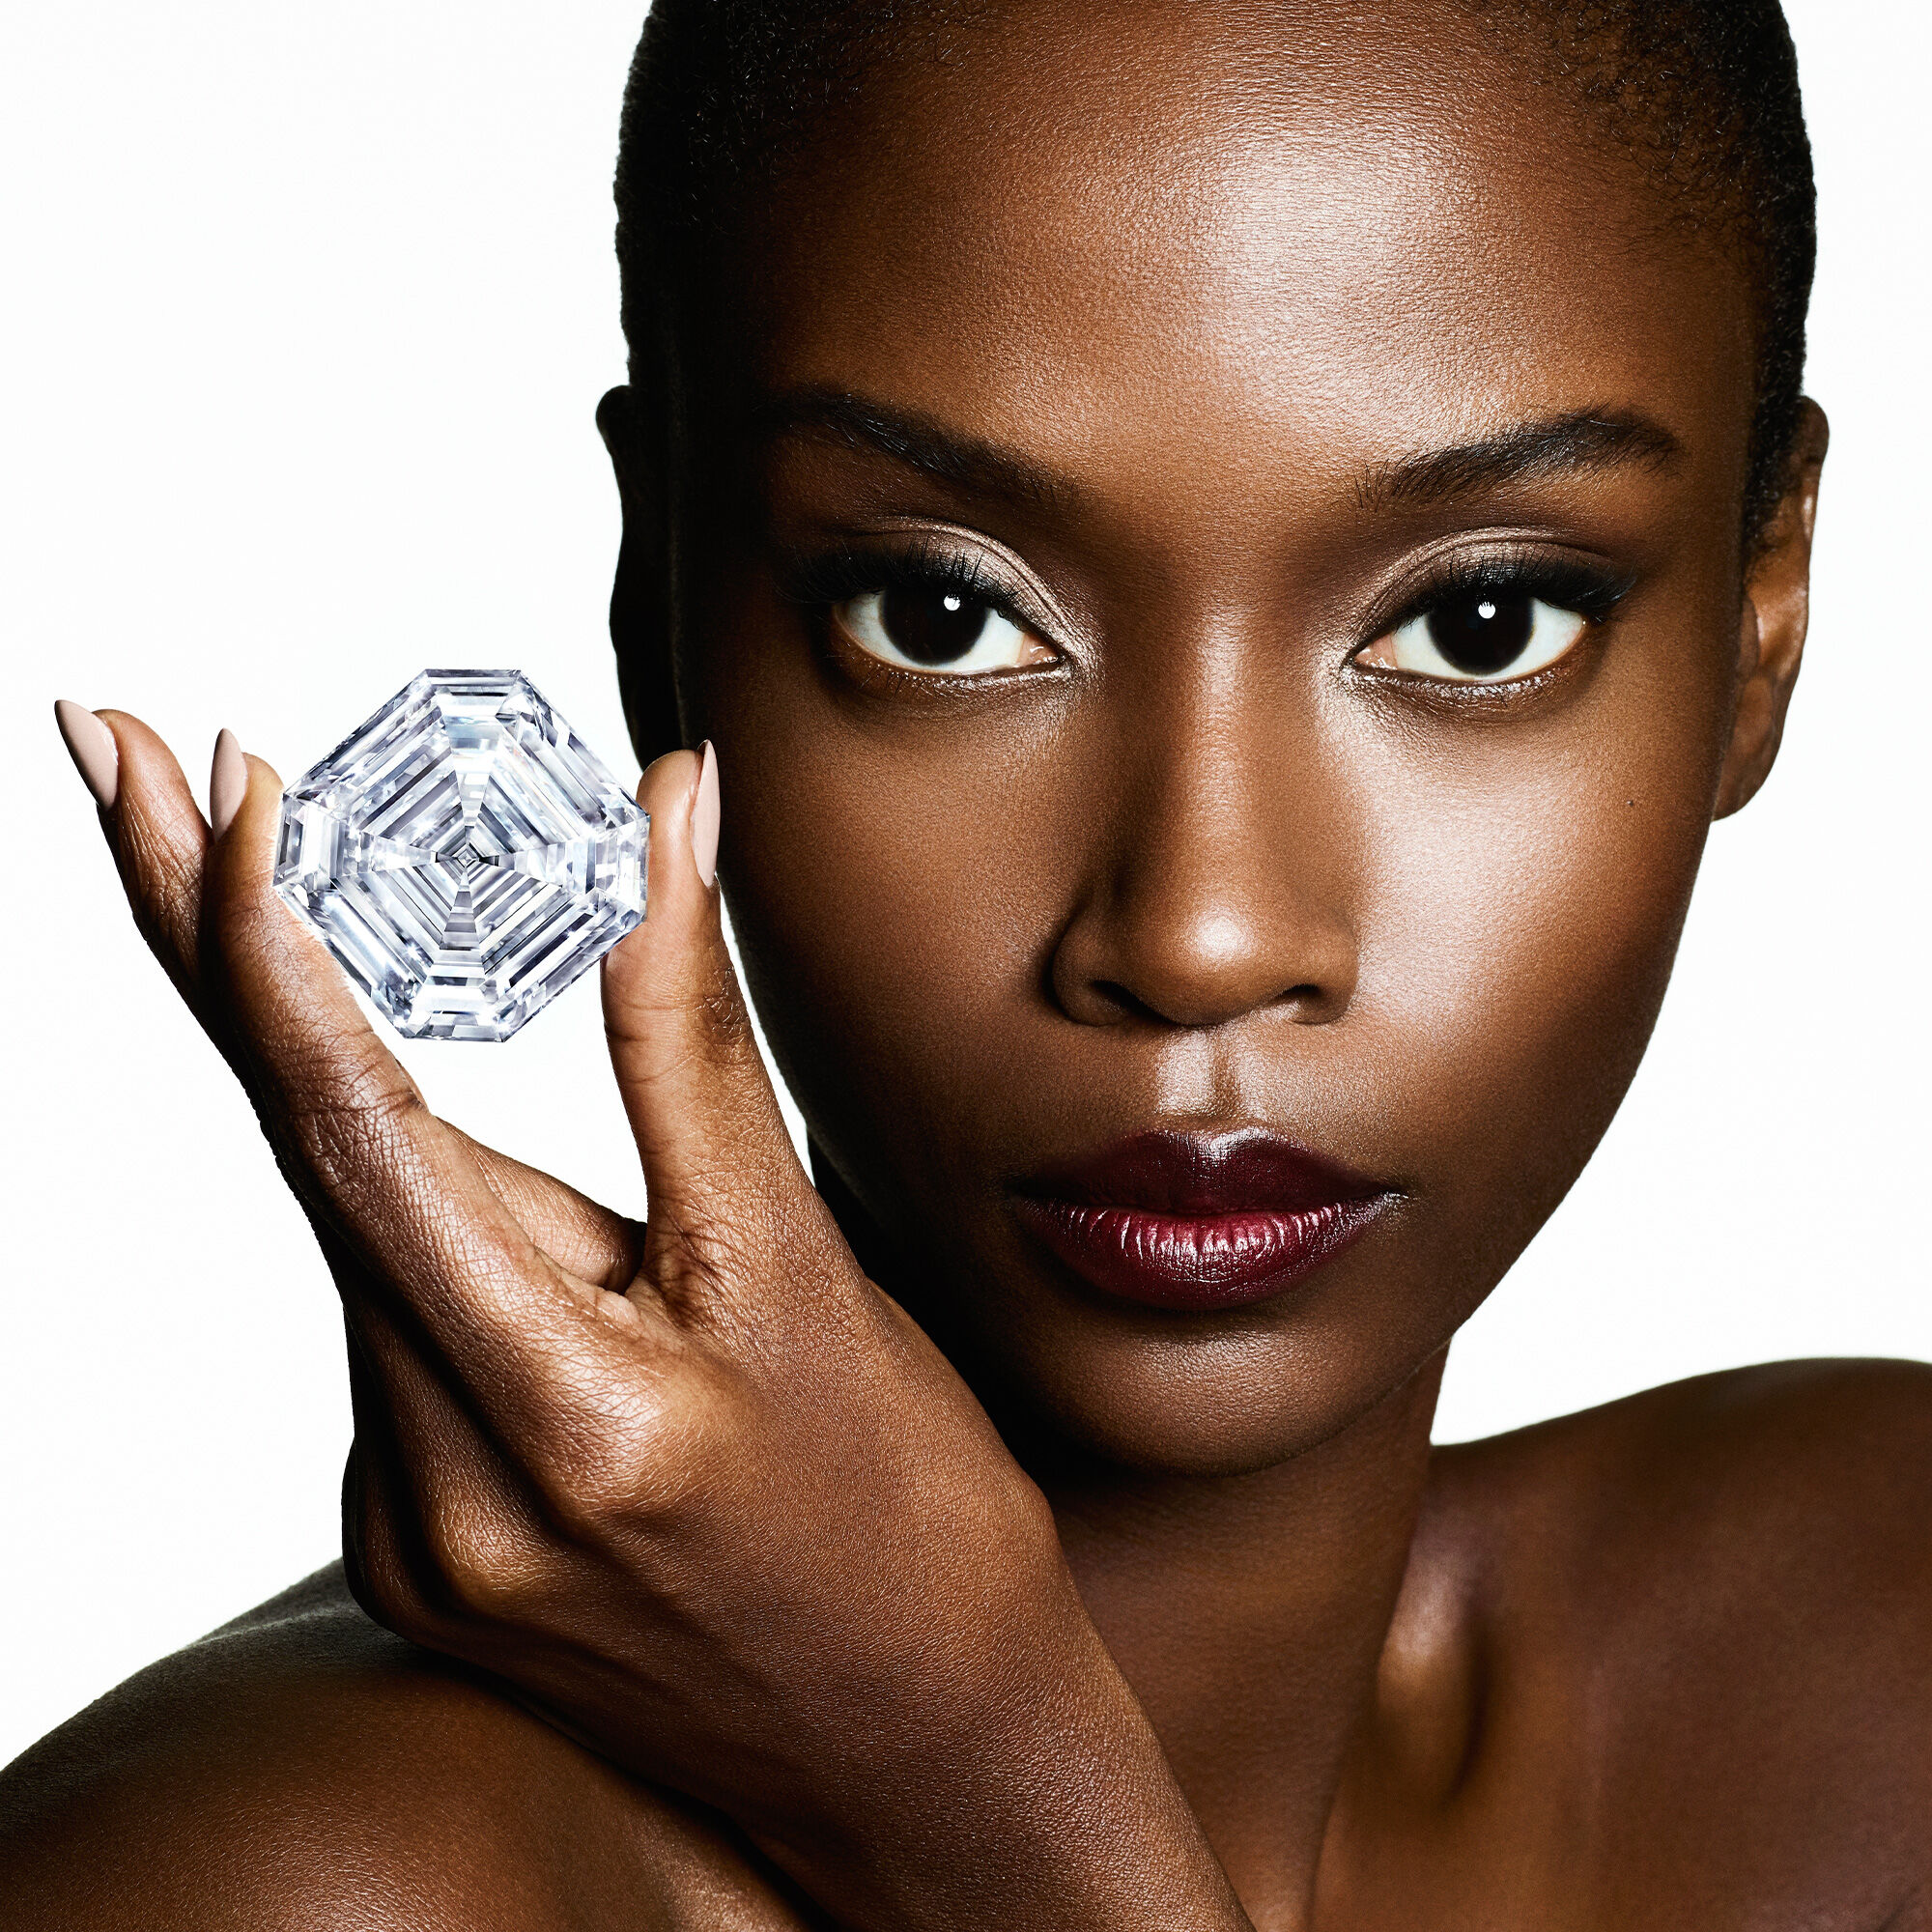 Model holding the Graff Lesedi La Rona famous diamond